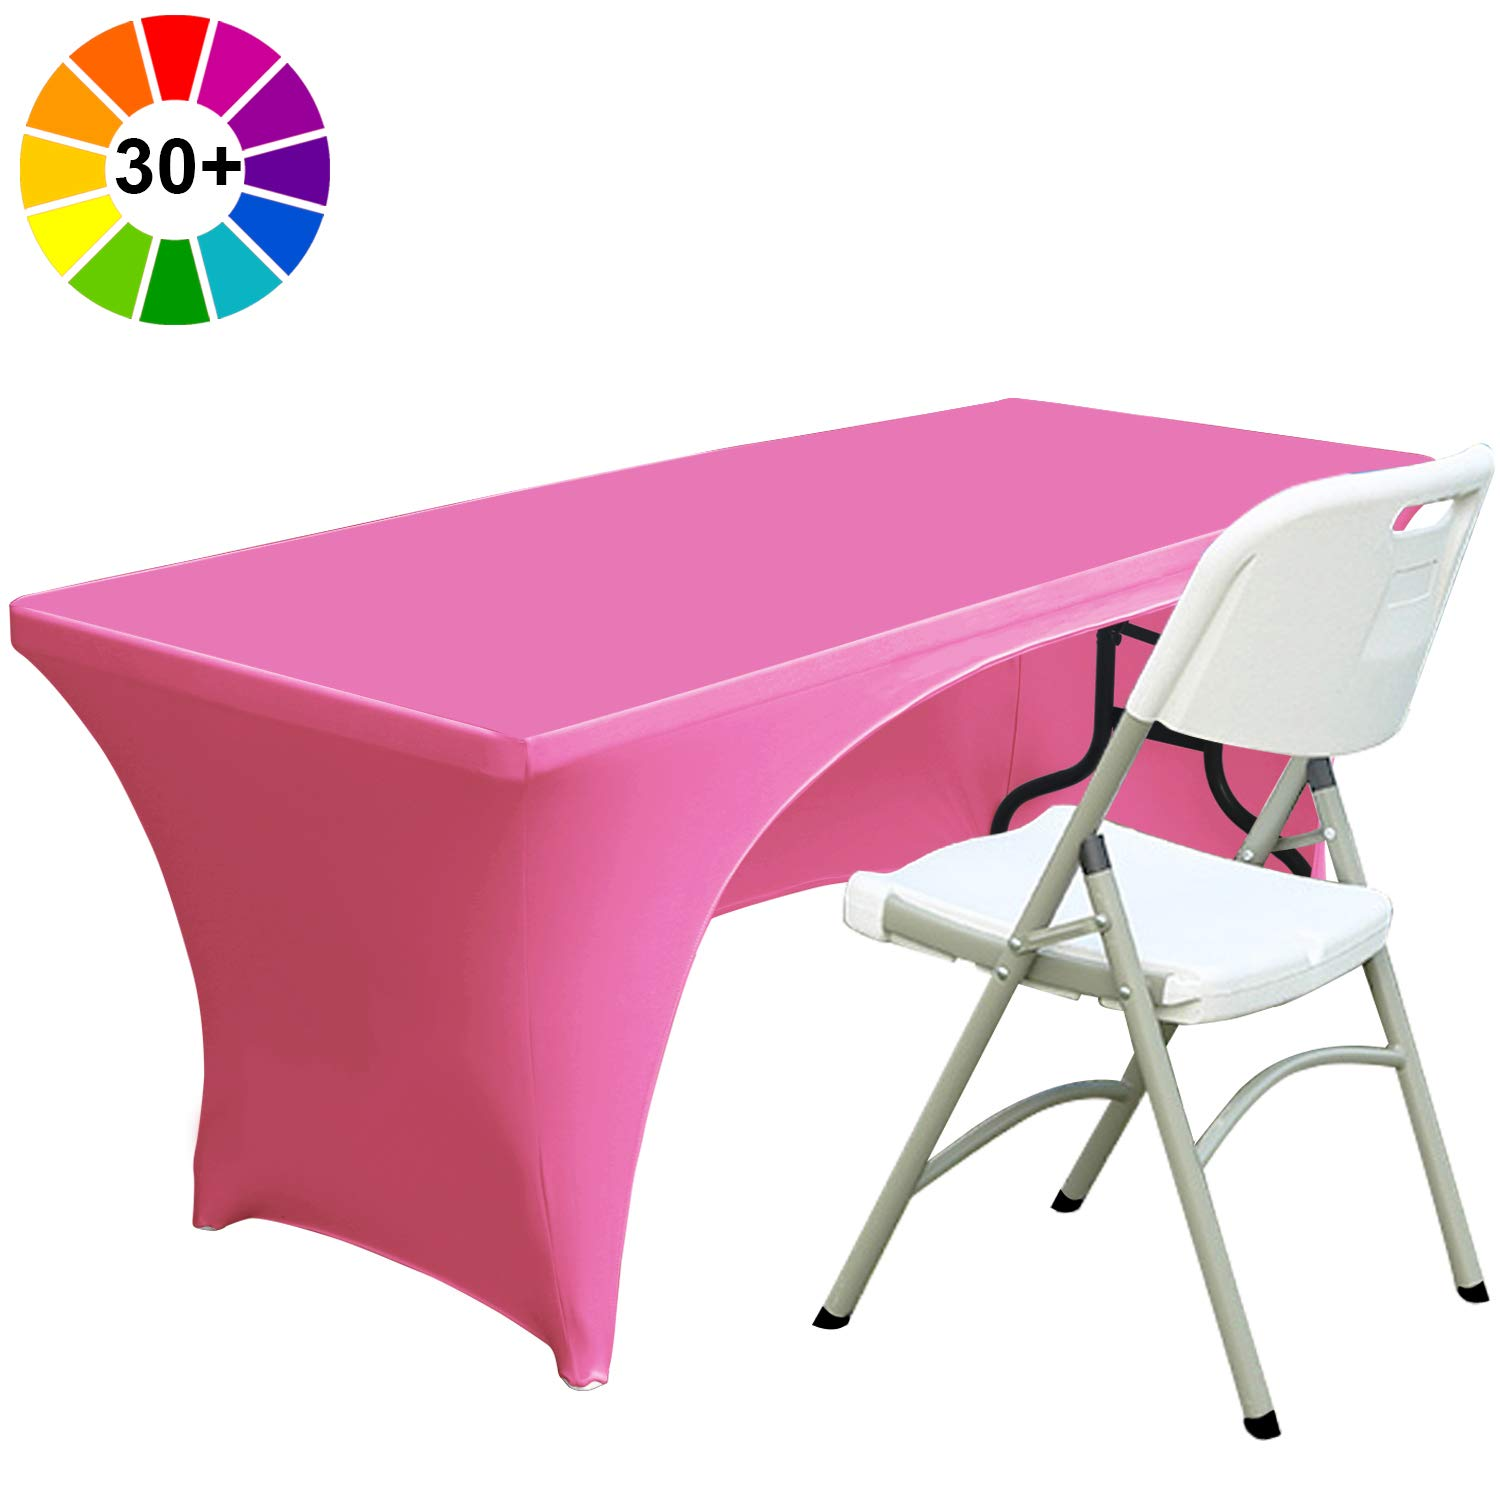 Fitted Polyester Tablecloth Stretch Spandex Tablecover-Table Toppers Open Back Black Colors Spandex Table Cover 6 ft ABCCANOPY 30